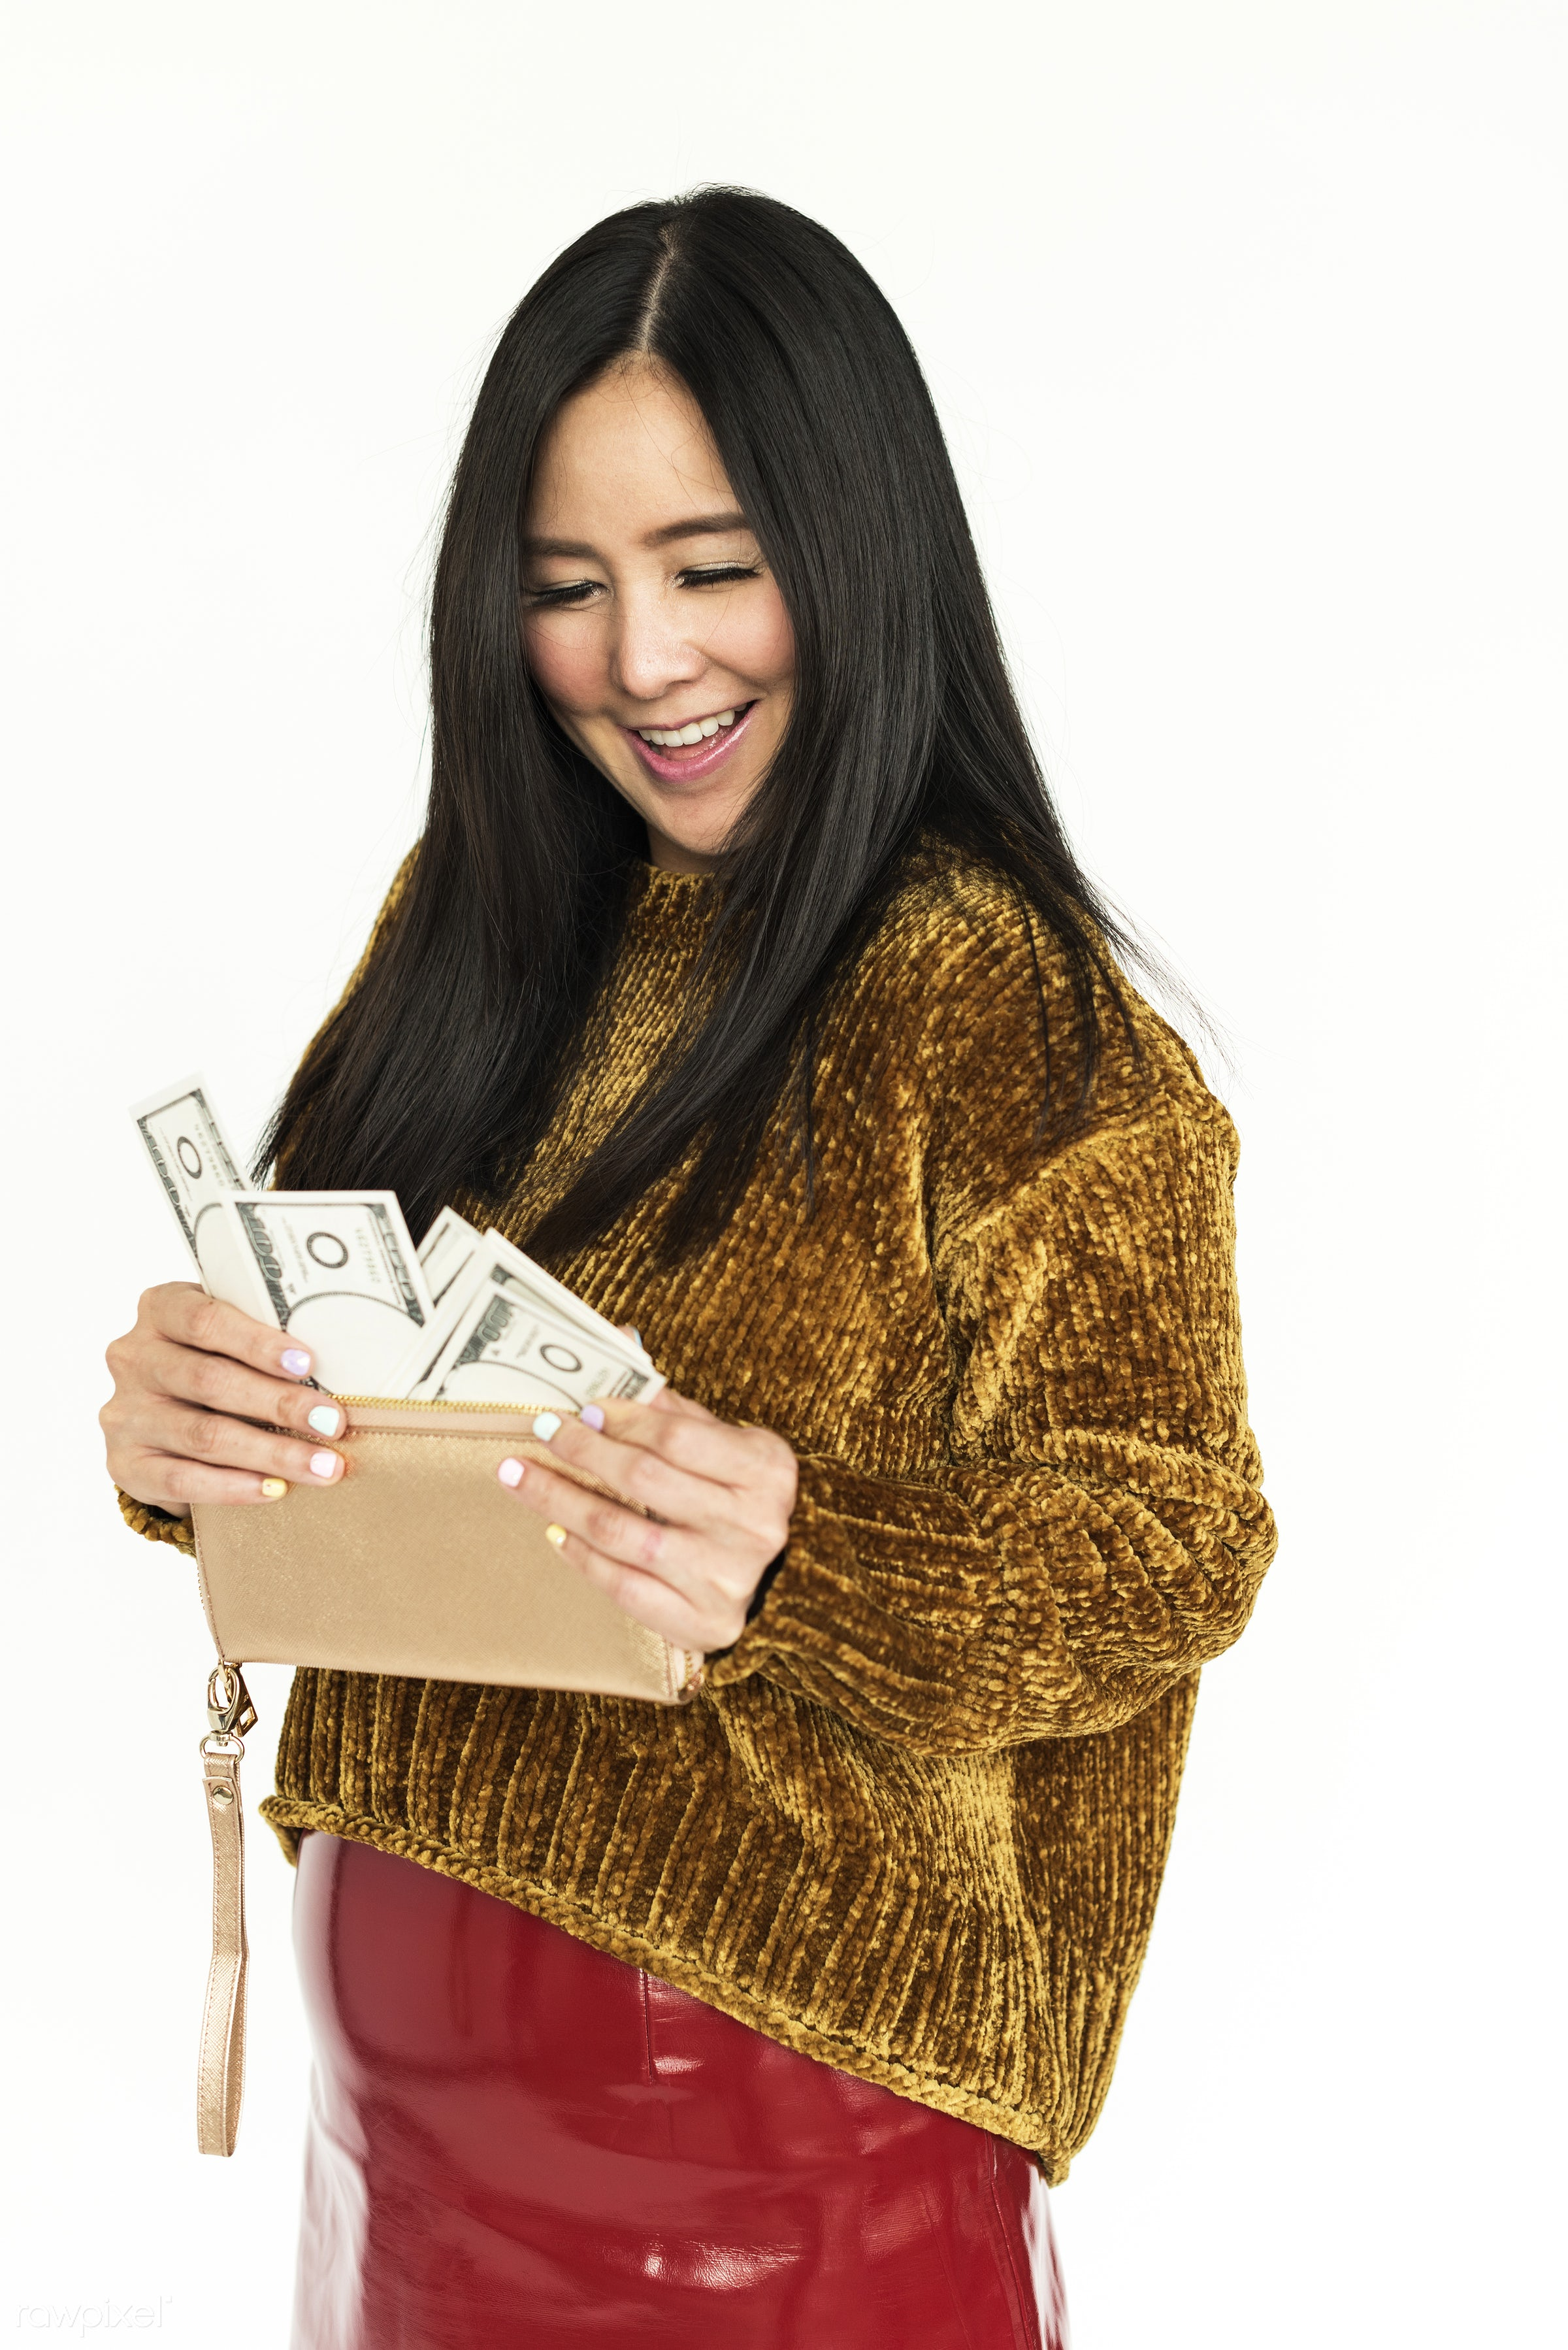 adult, asian, attractive, background, beautiful, beauty, black hair, candid, cash, casual, cheerful, chill, cold, currency,...